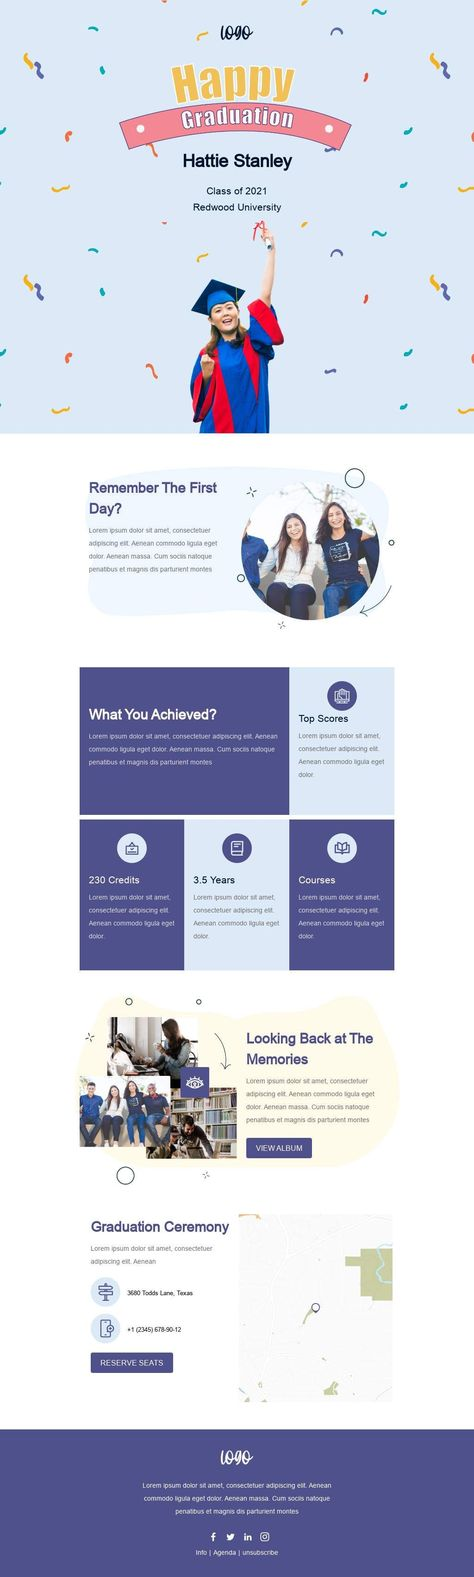 Graduation Ceremony - Email Template